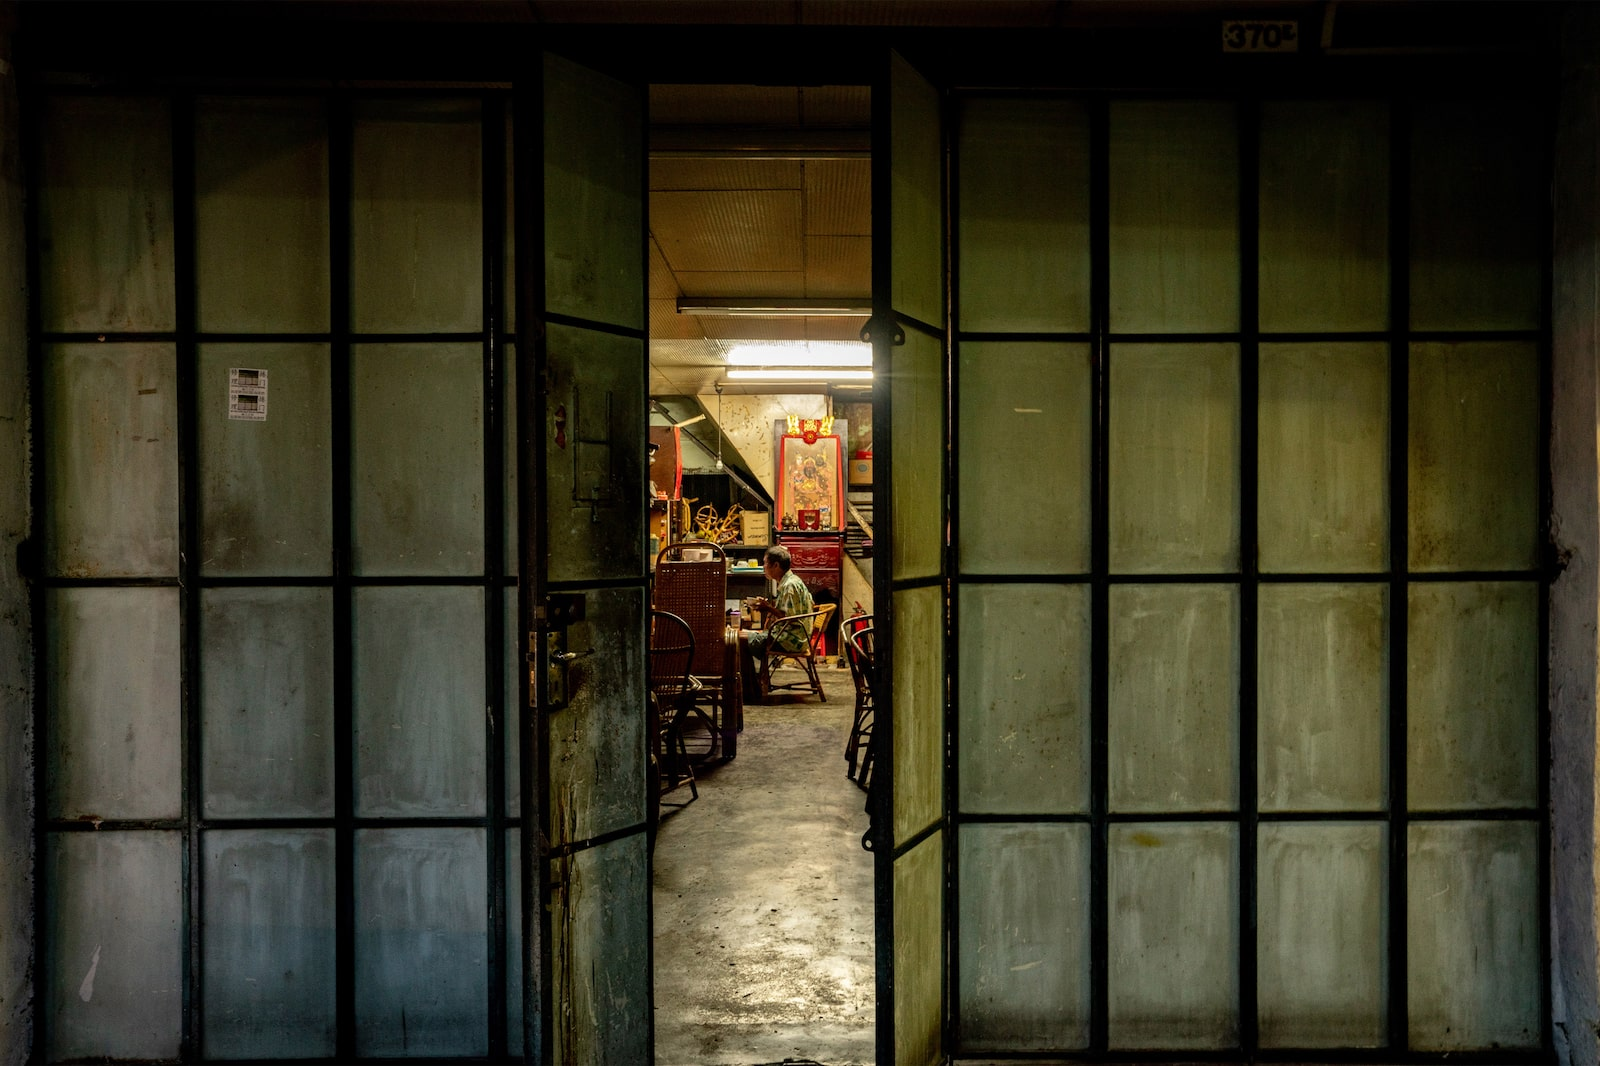 Doors partitioning the interior of an old shophouse